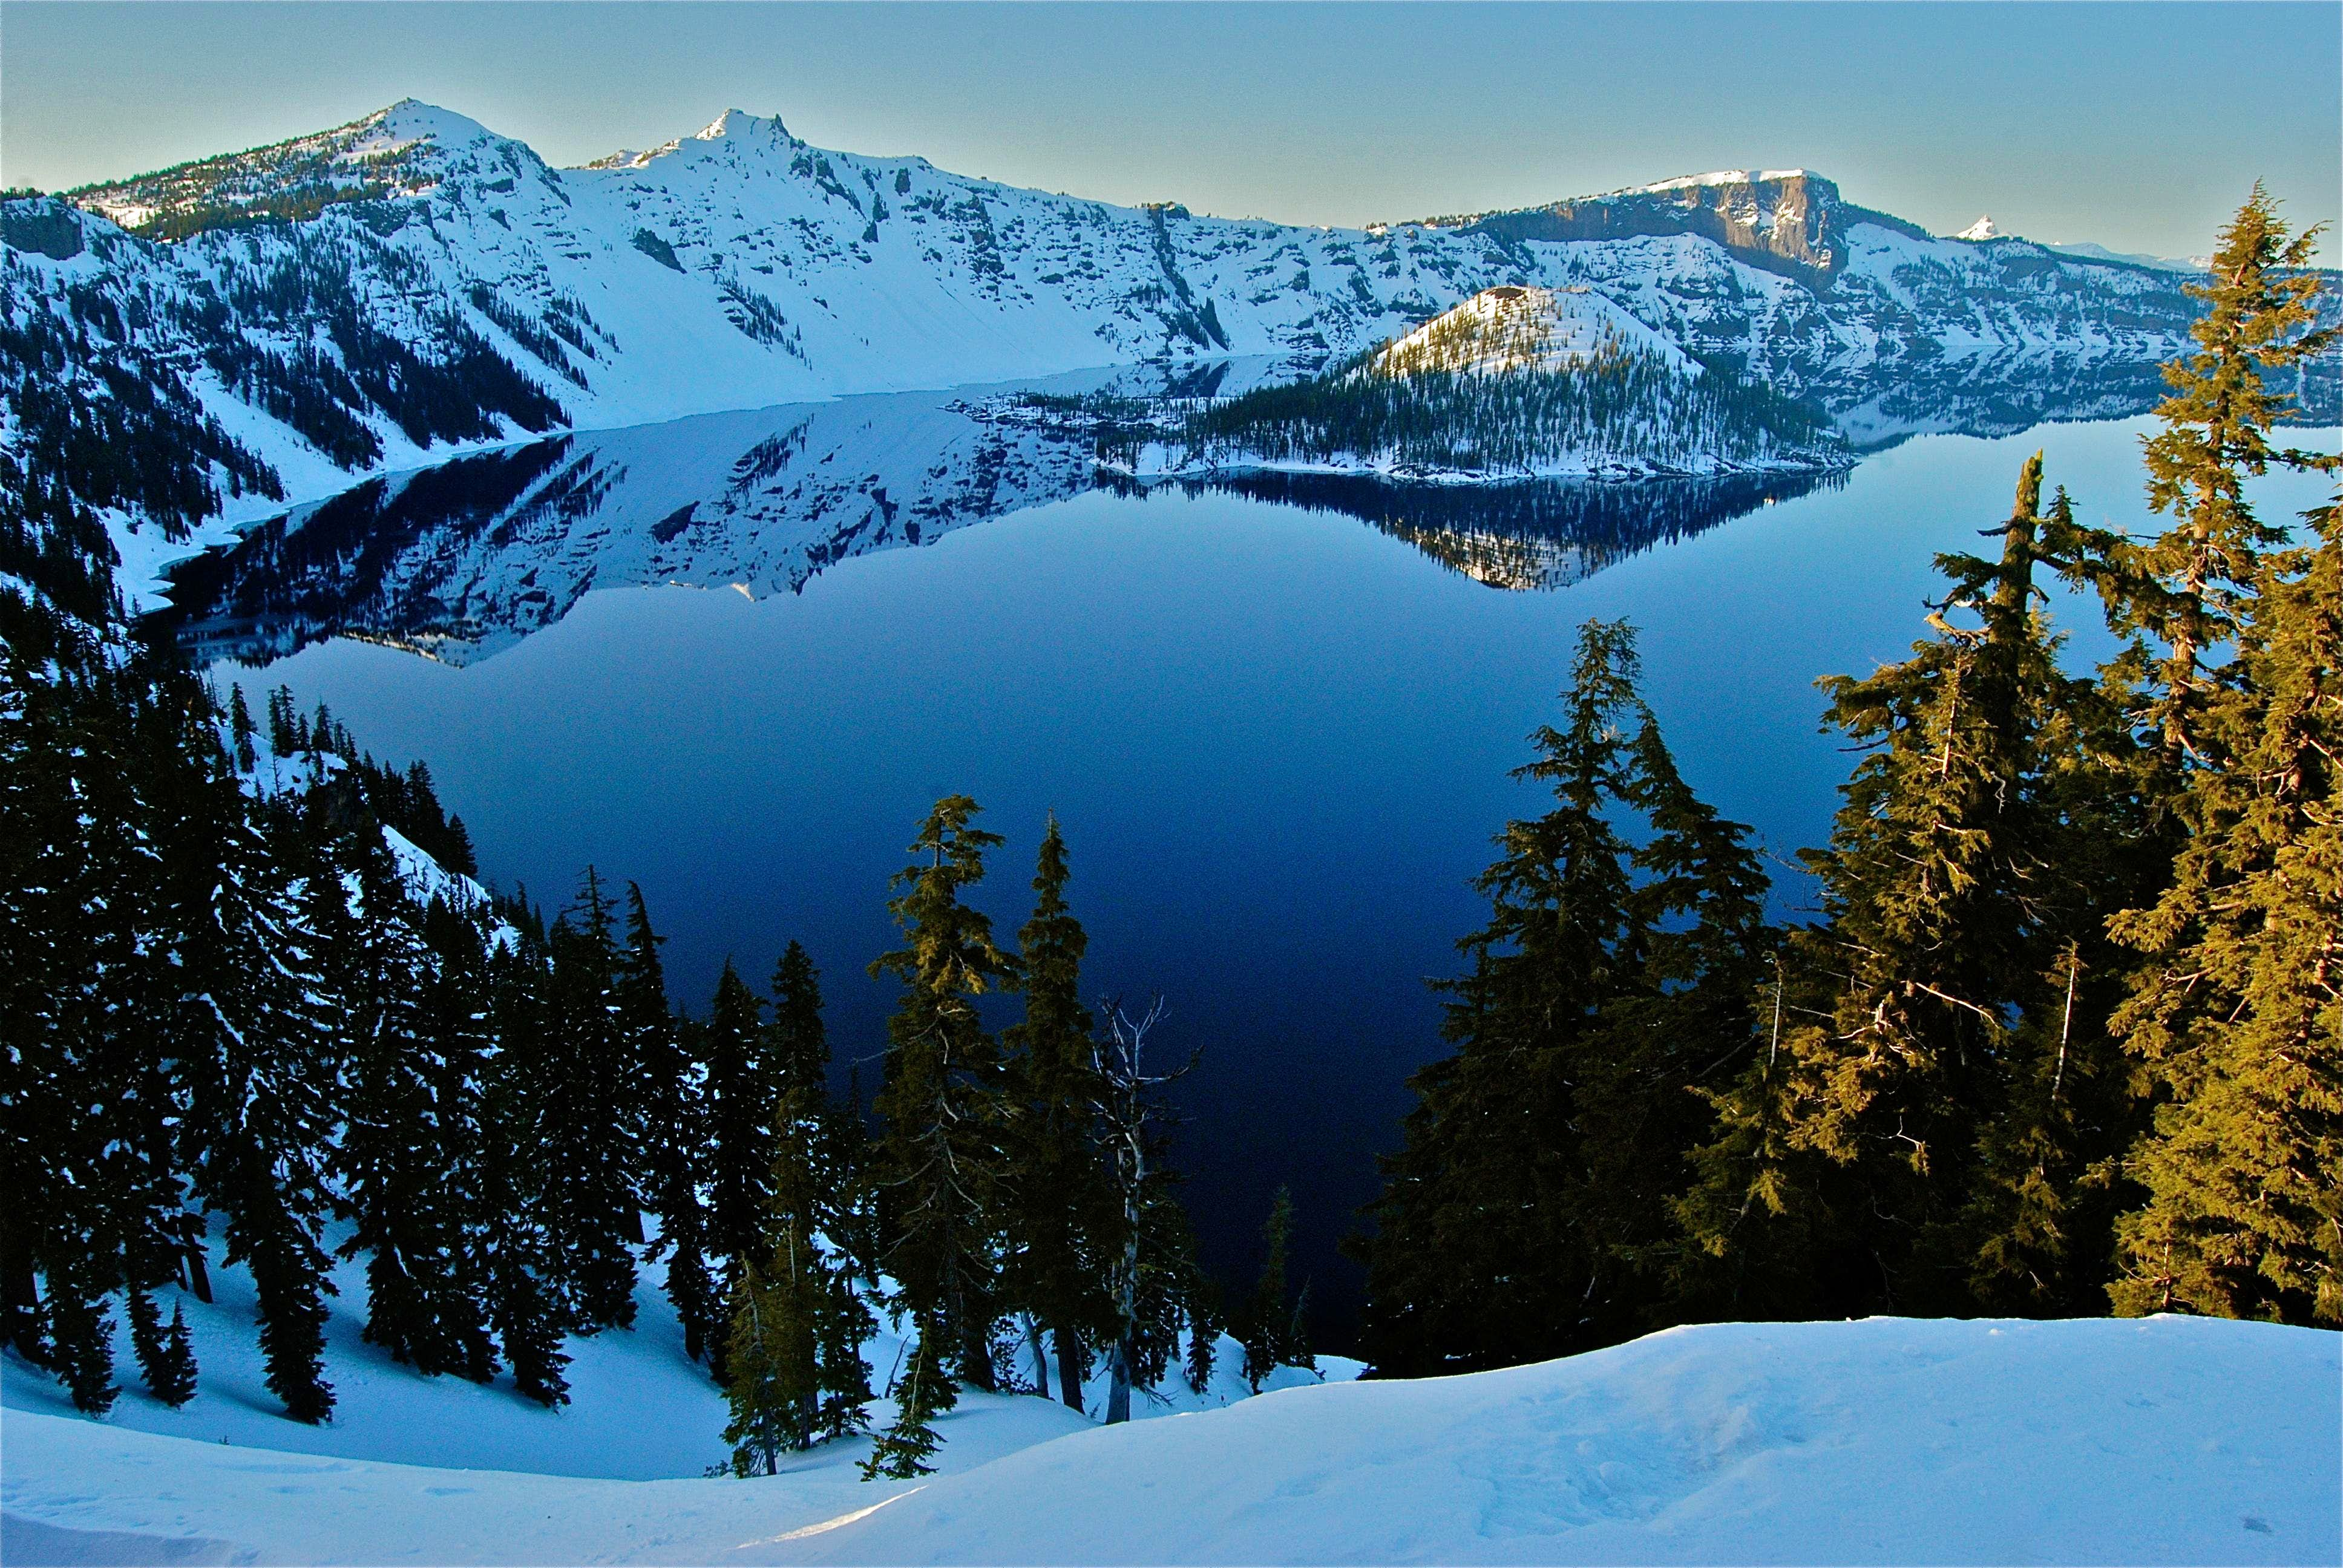 Crater Lake: March 2nd, 3rd 2012